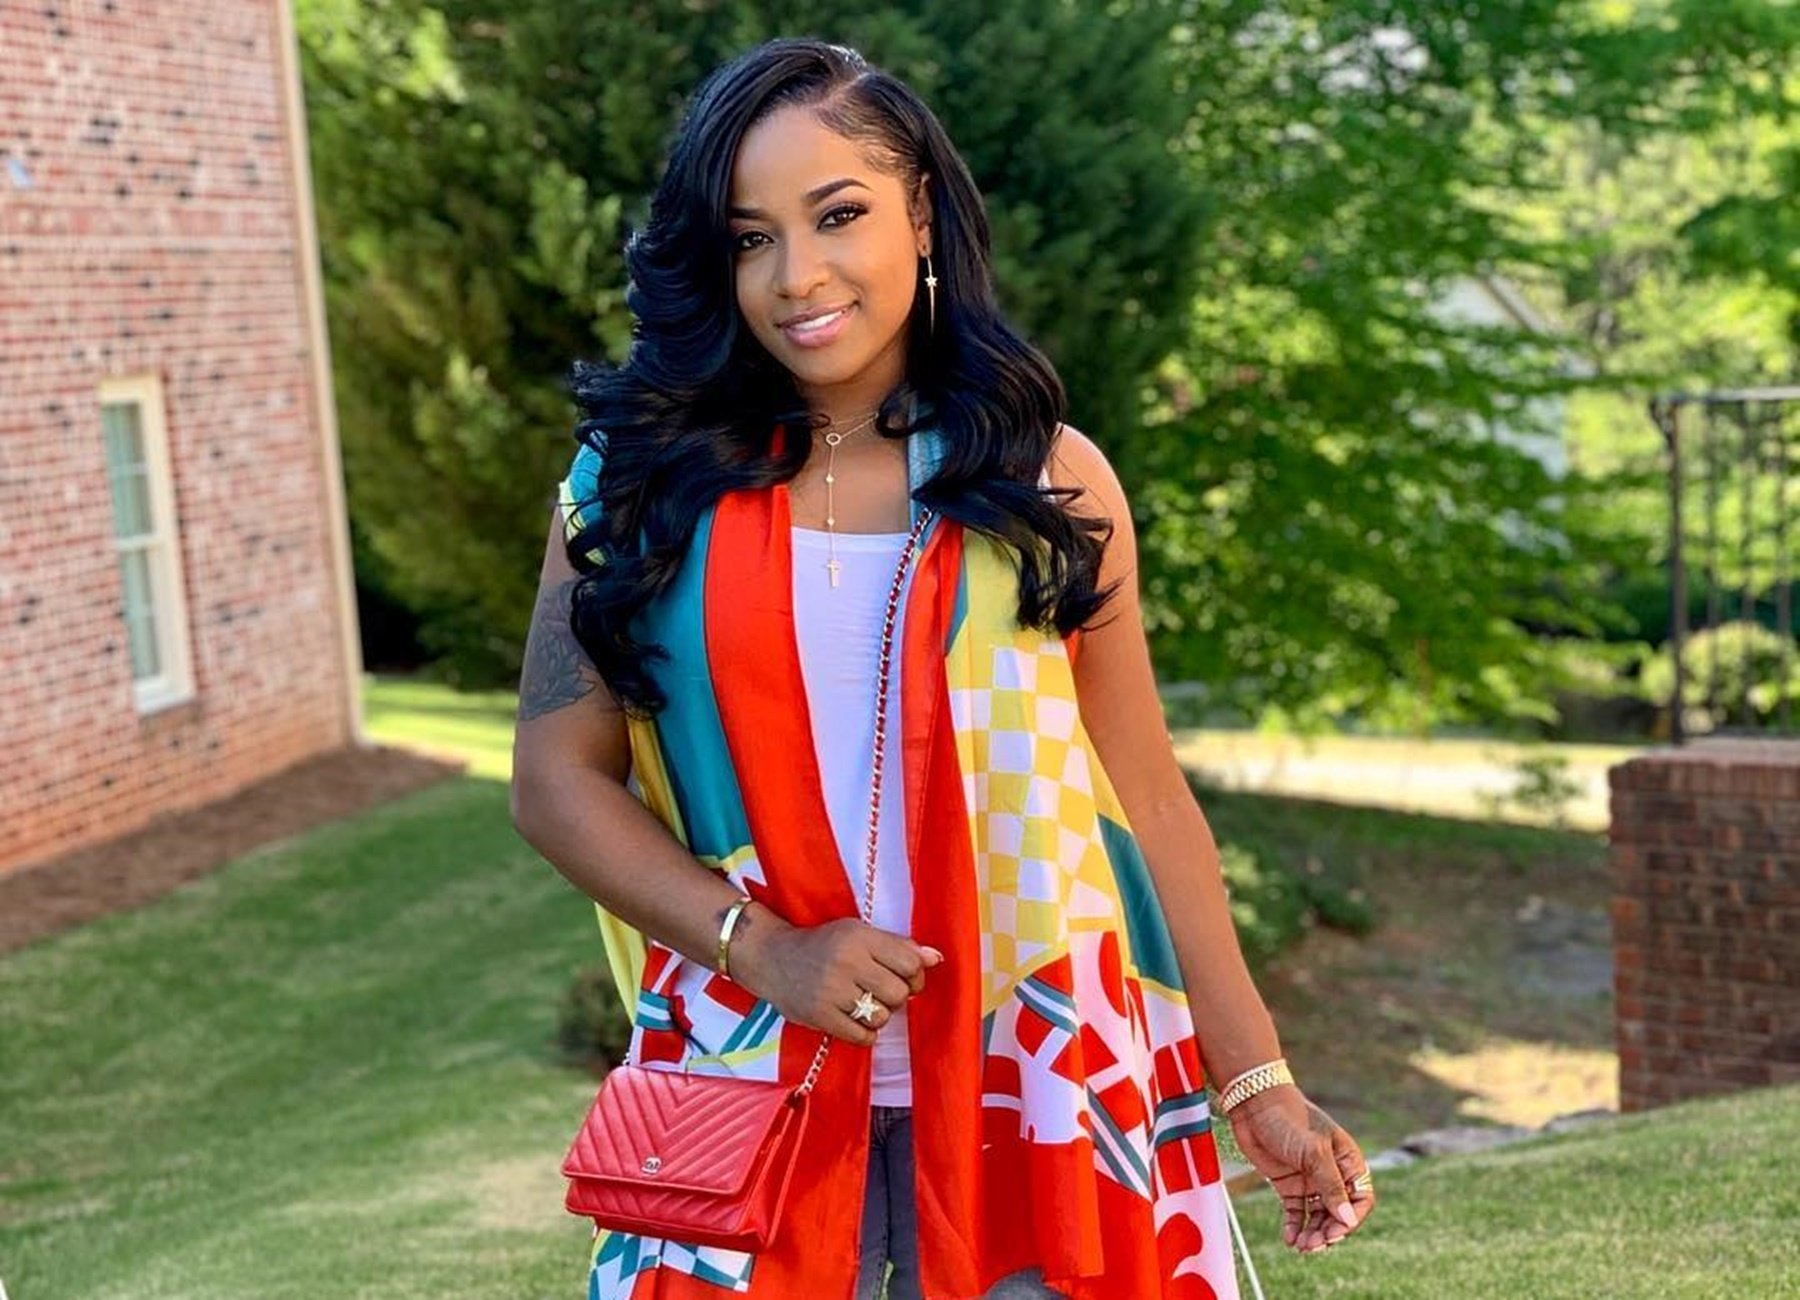 Toya Johnson Has Fans' Jaws Dropping In White Lingerie – See The Fabulous Photos